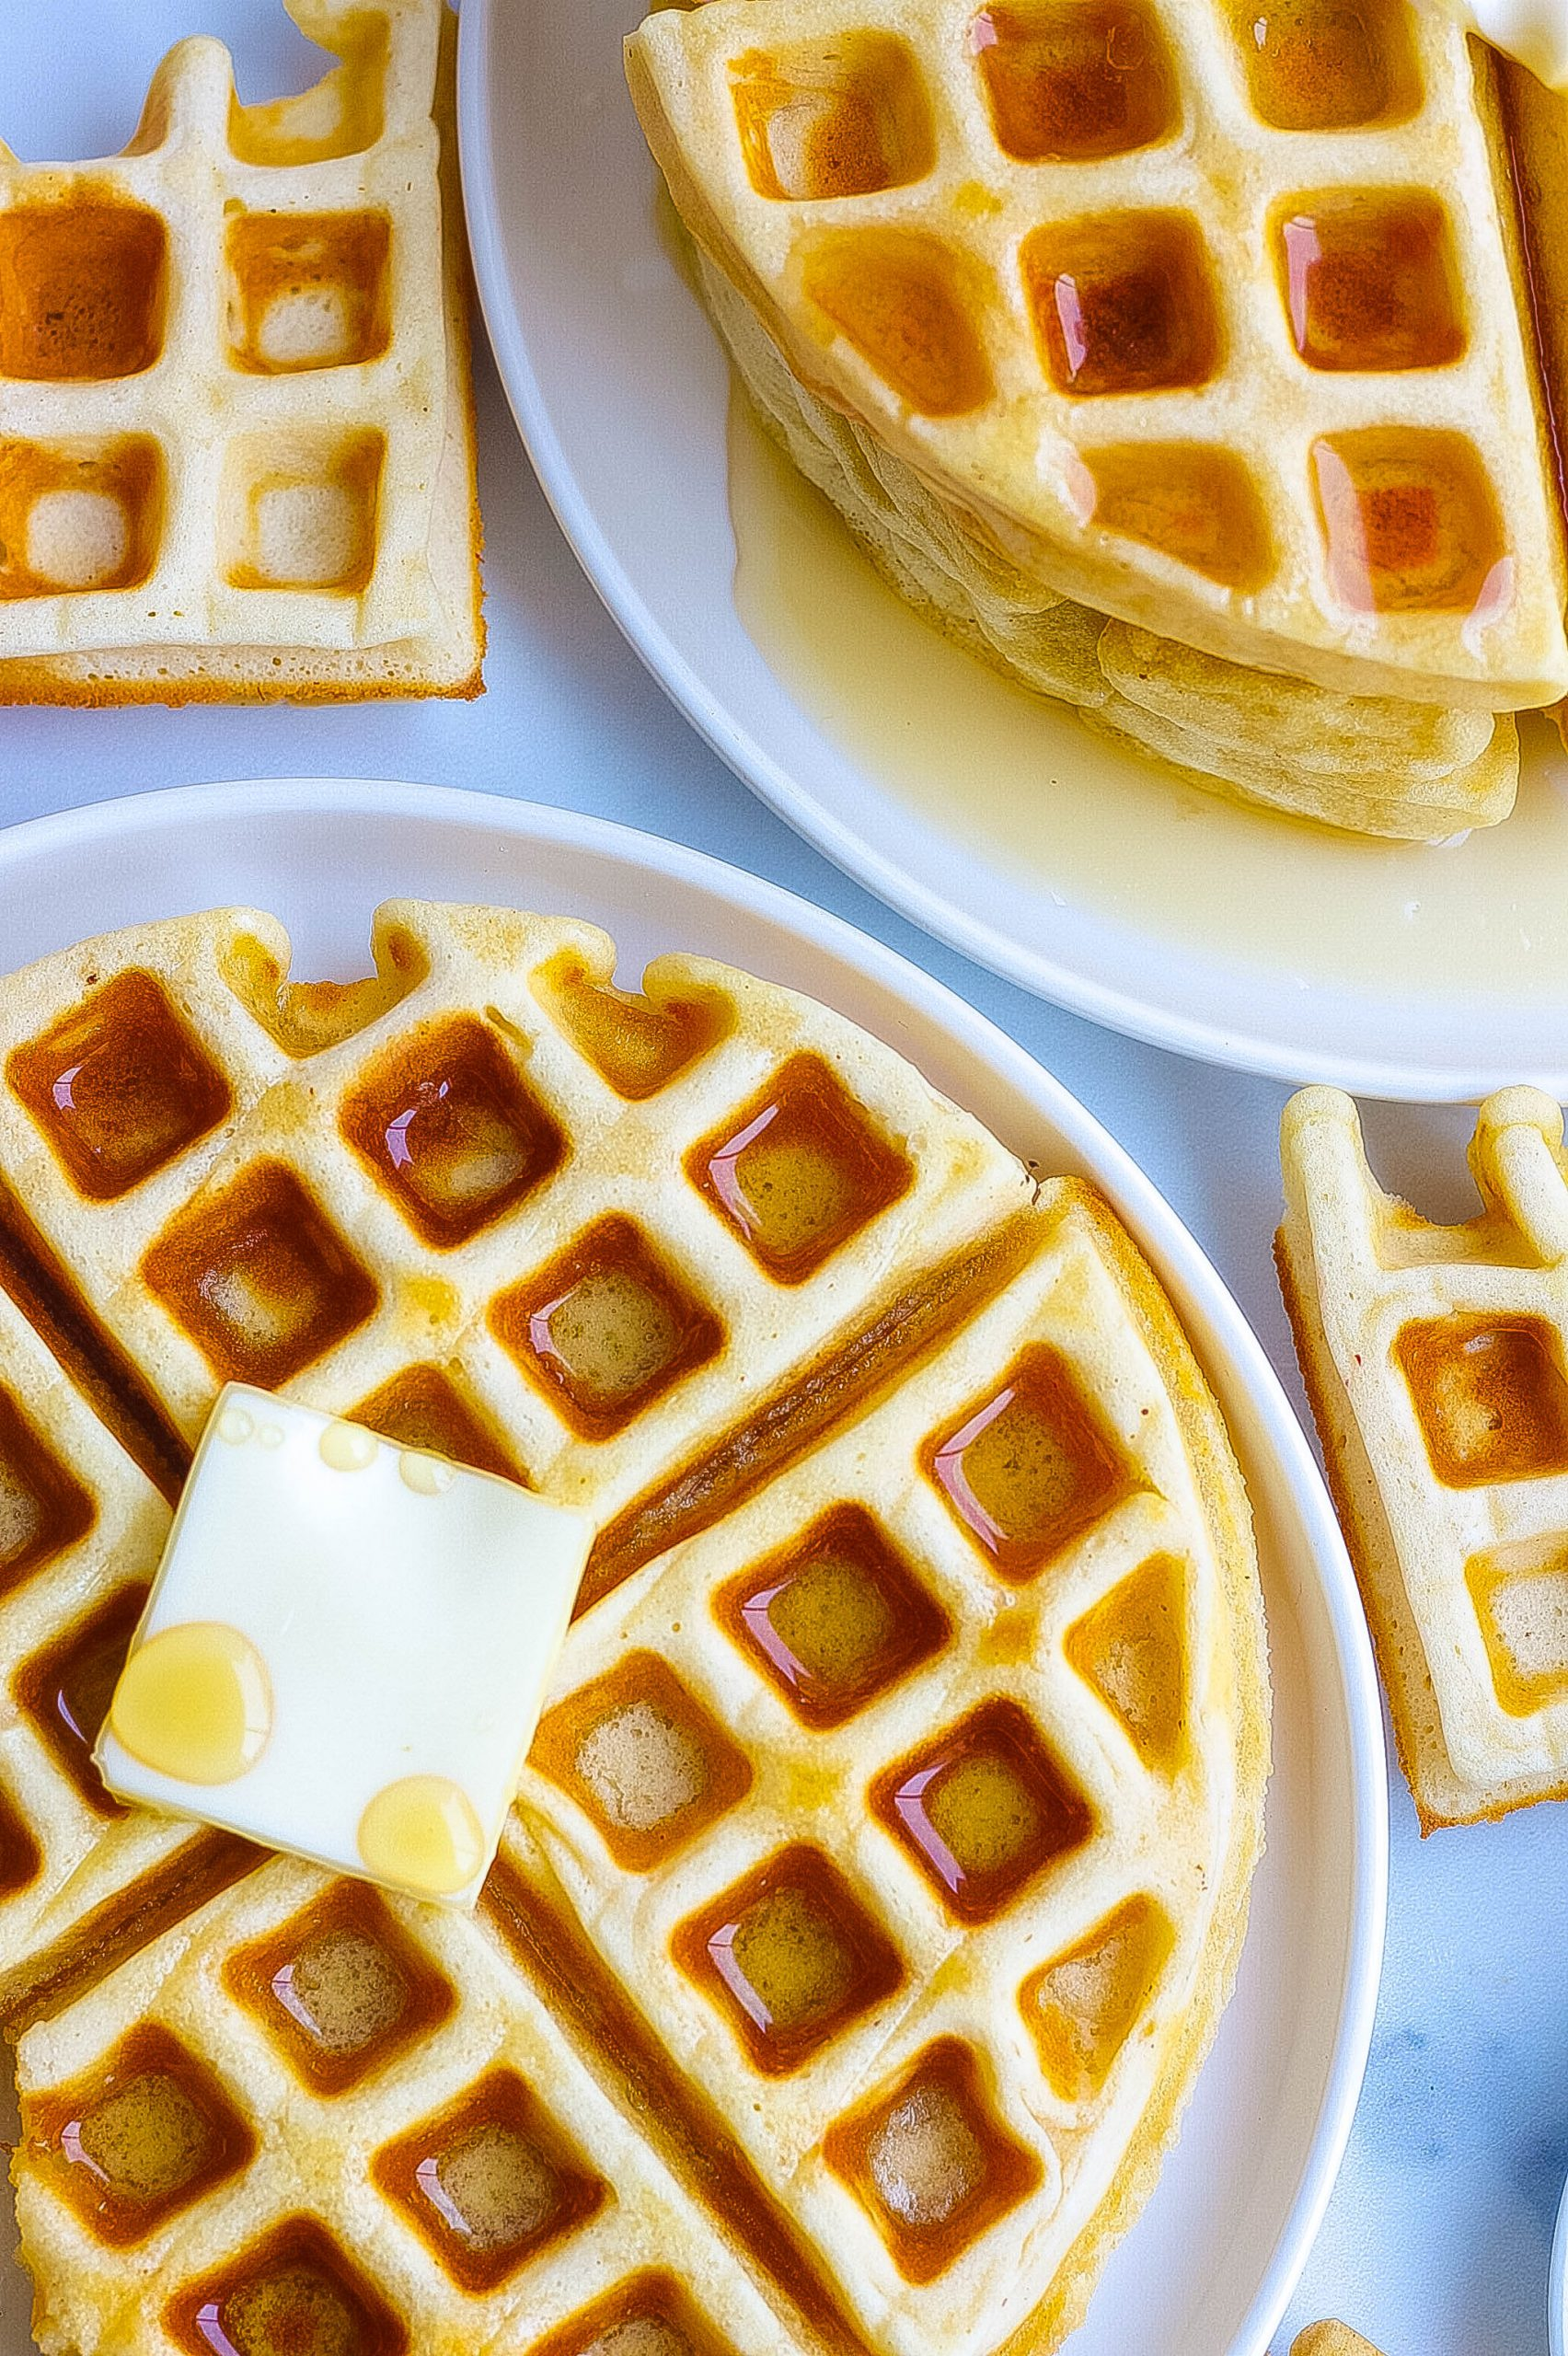 homemade buttermilk waffles with butter and syrup